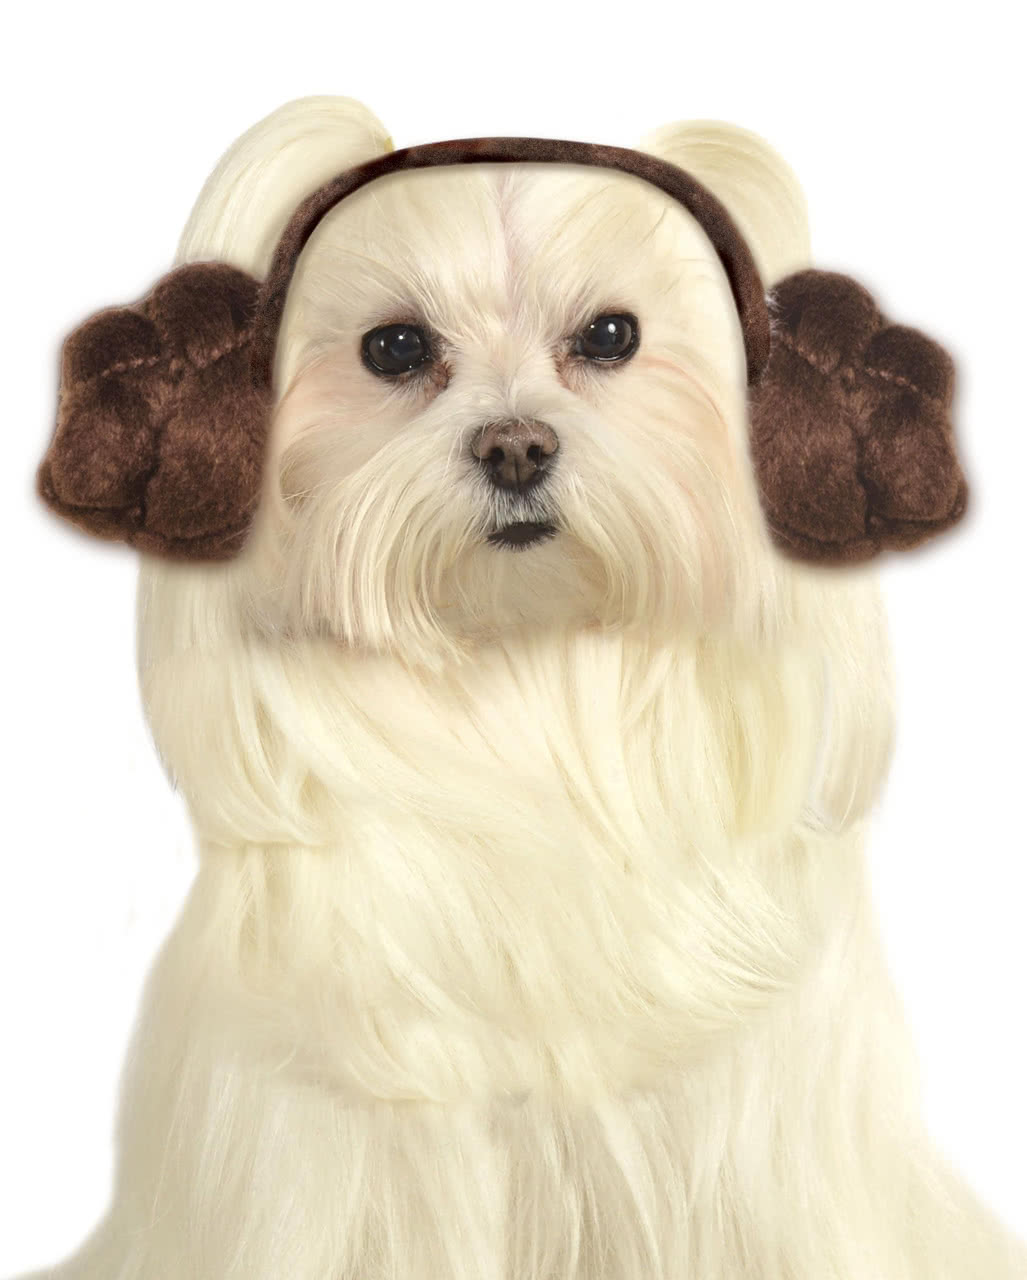 sc 1 st  Horror-Shop.com & Princess Leia Dog Frisur As a dog costume | horror-shop.com